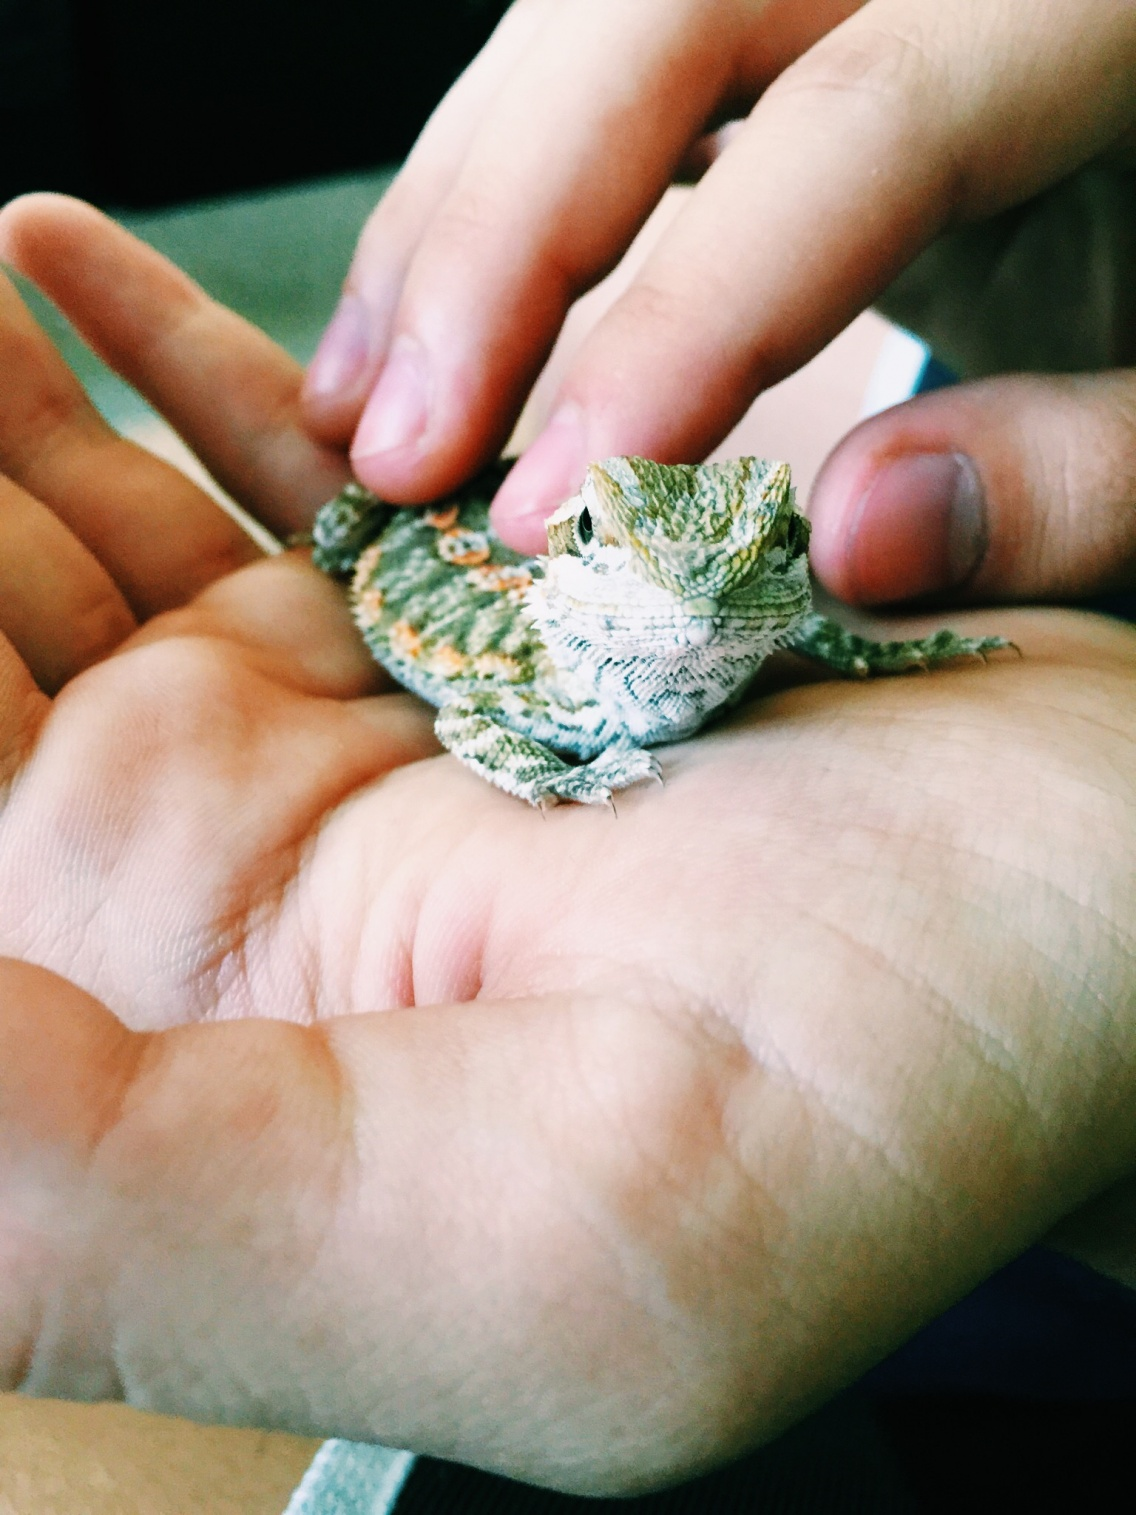 VSCO - We adopted a bearded dragon and named him Drogo  His